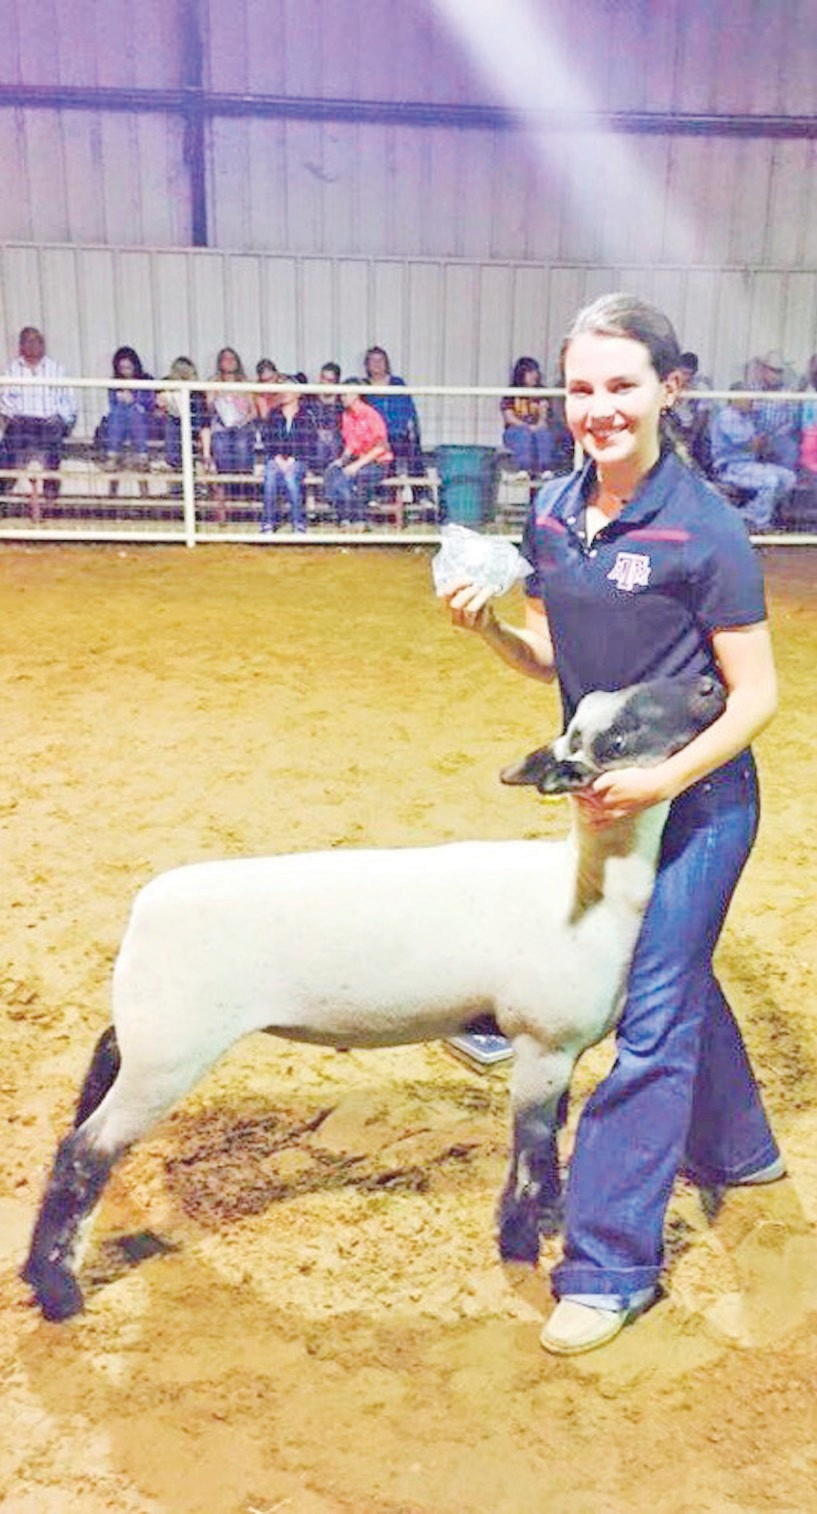 Jourdanton FFA Freshman, Serah Kate Blair recently participated in the Jourdanton FFA Chapter show where she won Senior Lamb Showmanship. Serah is the daughter of Julie and Trace Blair. This show allowed Serah to warm up for the 62nd Annual Atascosa County Livestock show which begins Monday, January 11th. A special section will be featured in the February 3 edition of the Pleasanton Express to wrap up the Atascosa and McMullen County stock shows. It will be a fun section filled with results and lots of photos! Please keep an eye out for the Pleasanton Express staff as they're out taking photos all week long and sharing posts on Facebook